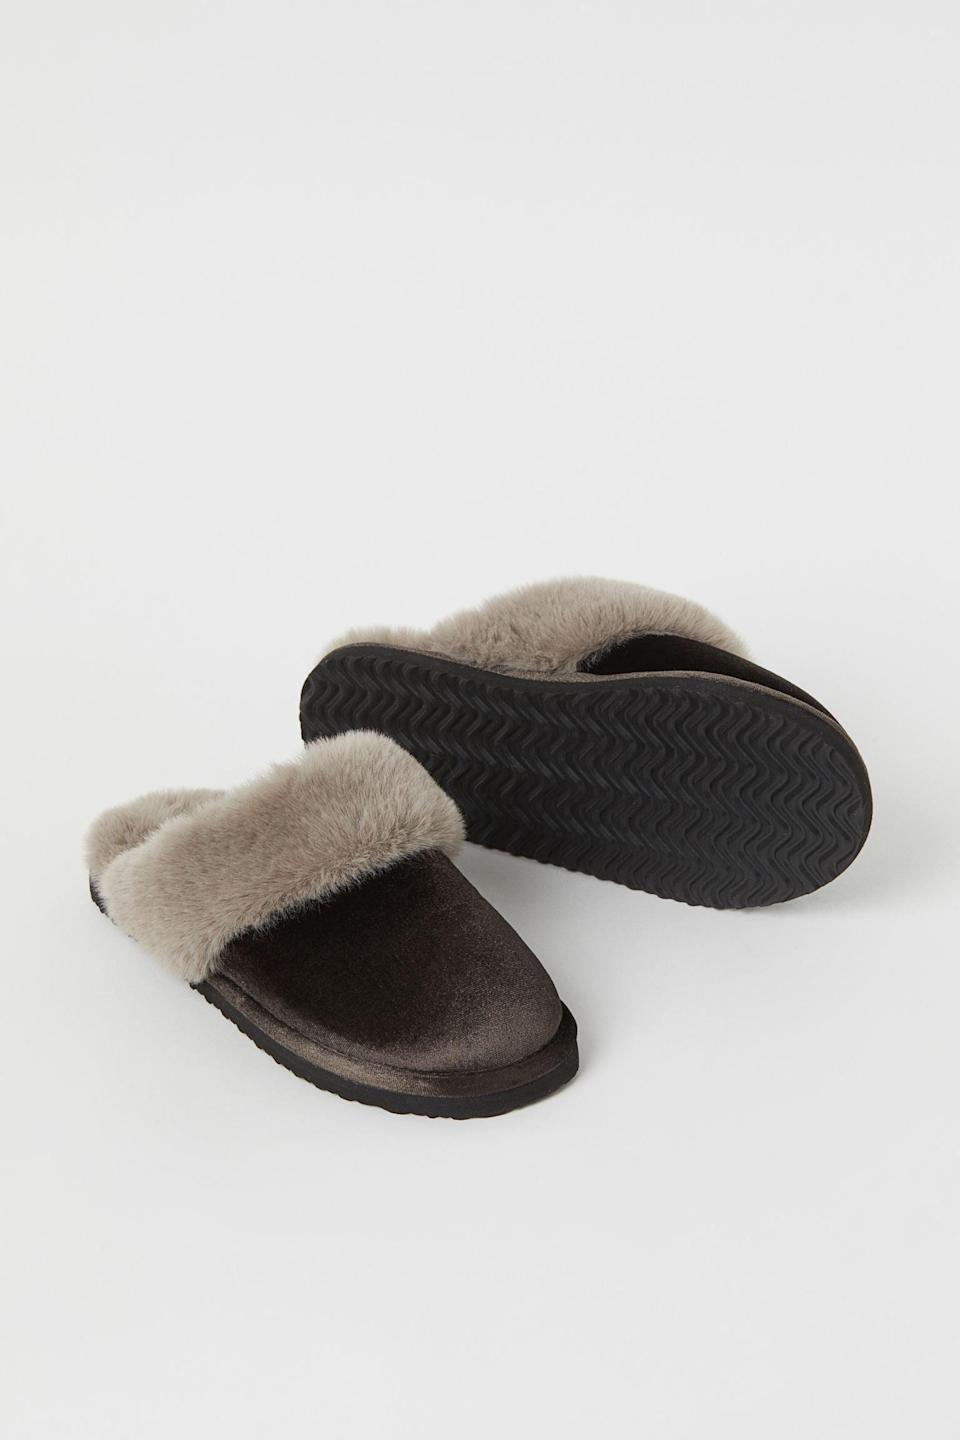 <p>These <span>Warm-Lined Indoor Slippers</span> ($25) are easy to slip on or off, and very comfortable to walk around in all day.</p>